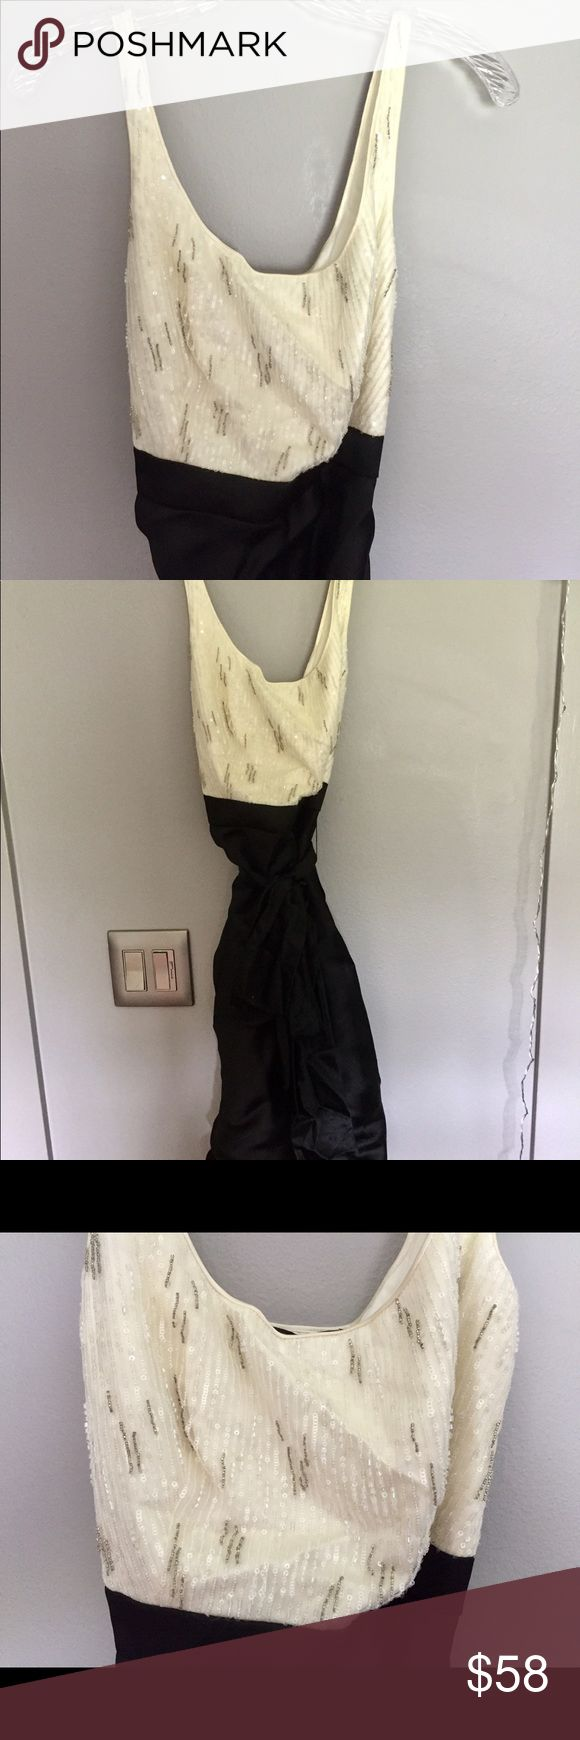 """""""Carmen Marc Valvo"""". Black and white dress """"Carmen Marc Valvo"""" black and white cocktail dress. Size: 8. Worn once, like new. 39 inches from top of sleeve to hem of dress. Top is beaded with sequins. Zipper on side of dress. Carmen Marc Valvo Dresses Midi"""